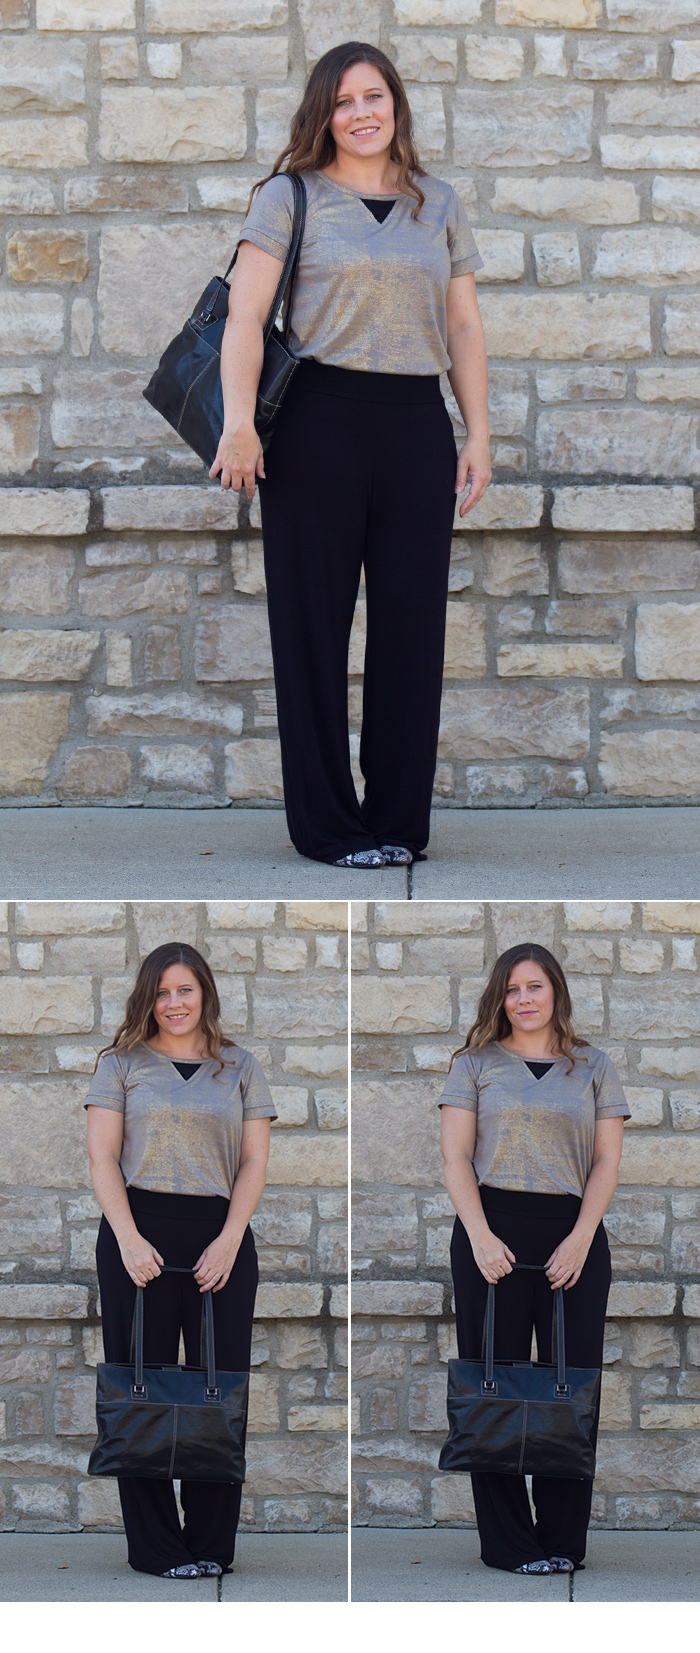 Sewing patterns: Go To Knit Pants & Neptune Tee -patternanthology.com